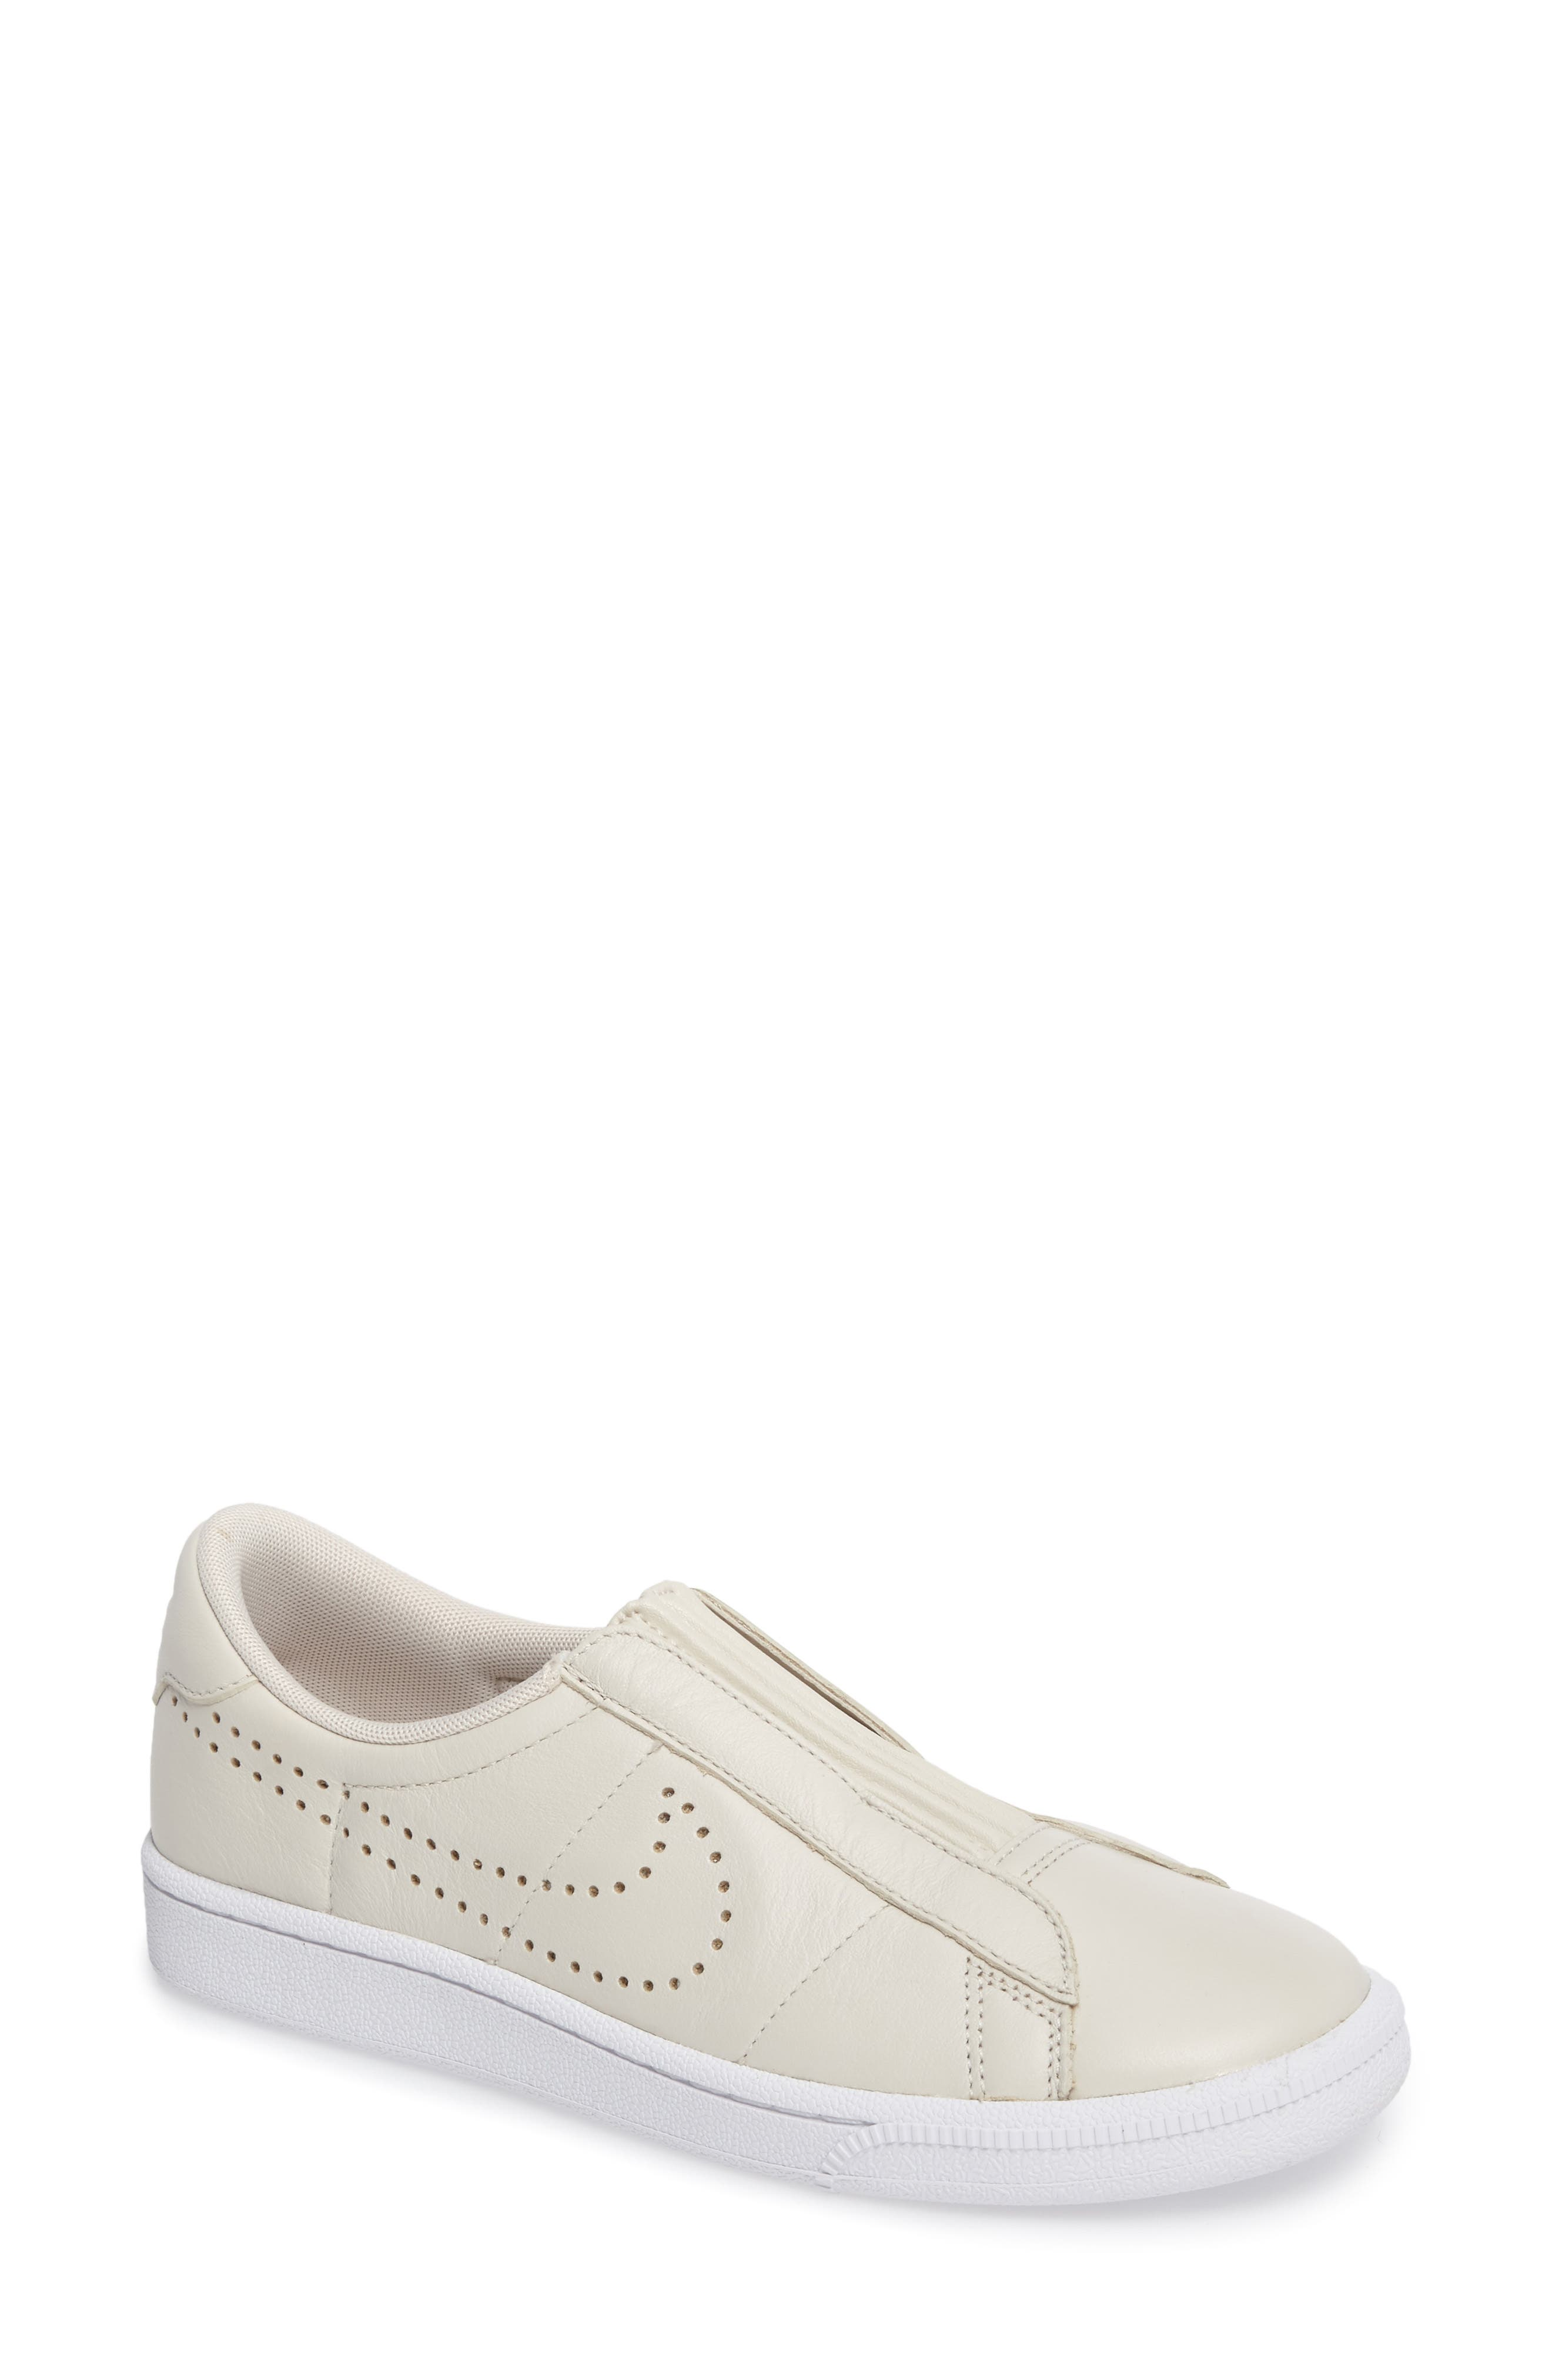 Nike Classic EZ Slip-On Tennis Shoe (Women)